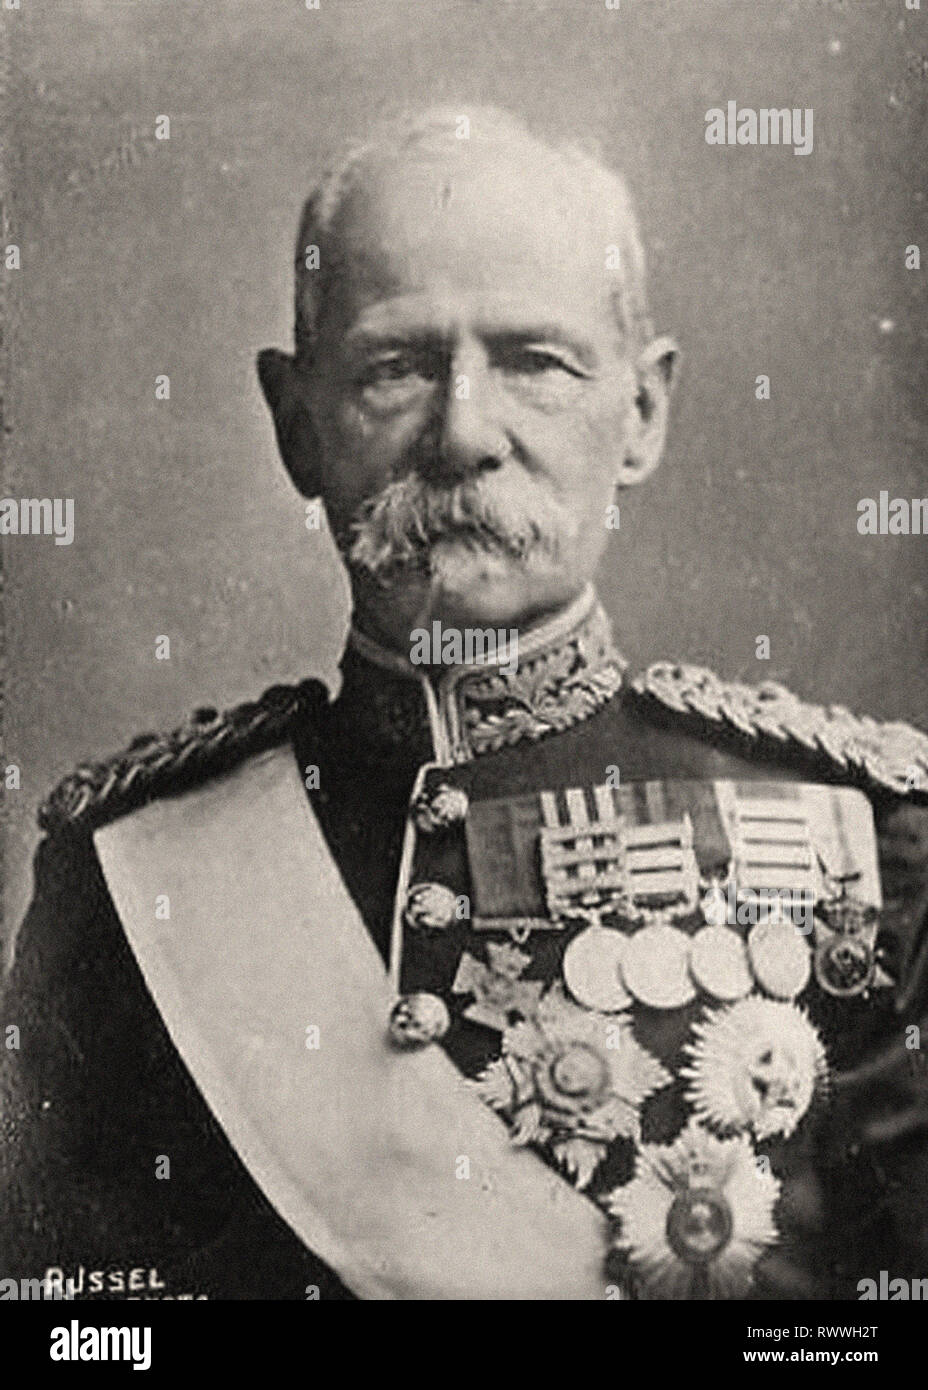 Photographic portrait of Lord Roberts - Stock Image